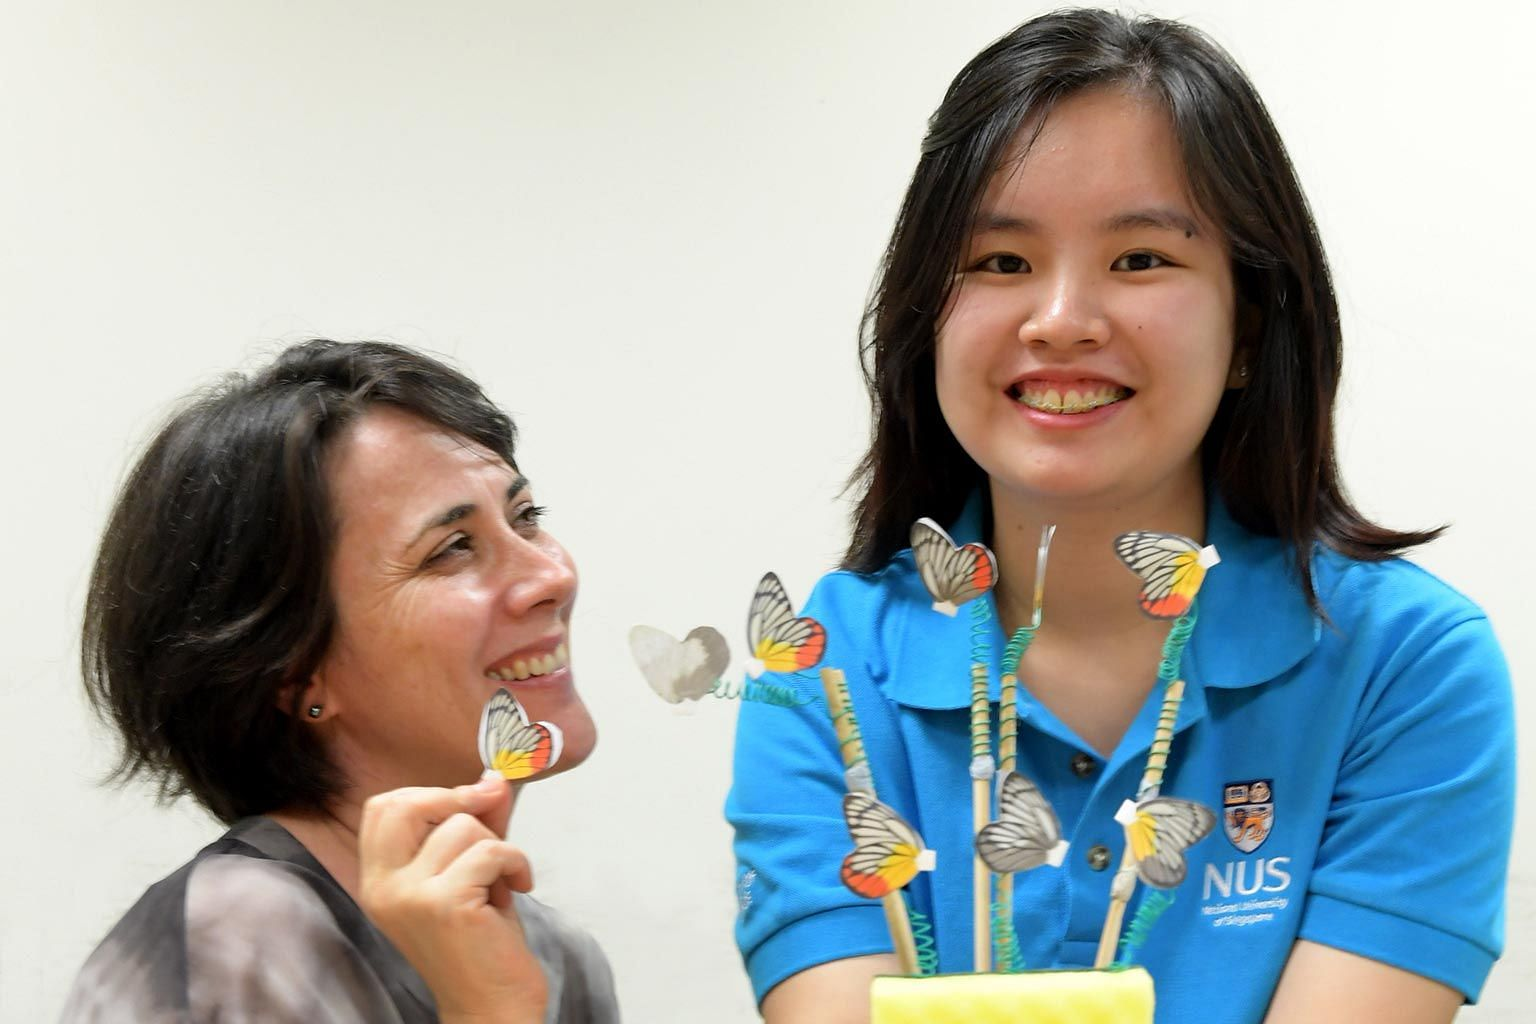 NUS PhD student Jocelyn Wee and her supervisor Antonia Monteiro with the butterfly models she used during the study. Ms Wee found that red appeared to be more effective than yellow in keeping predators at bay.